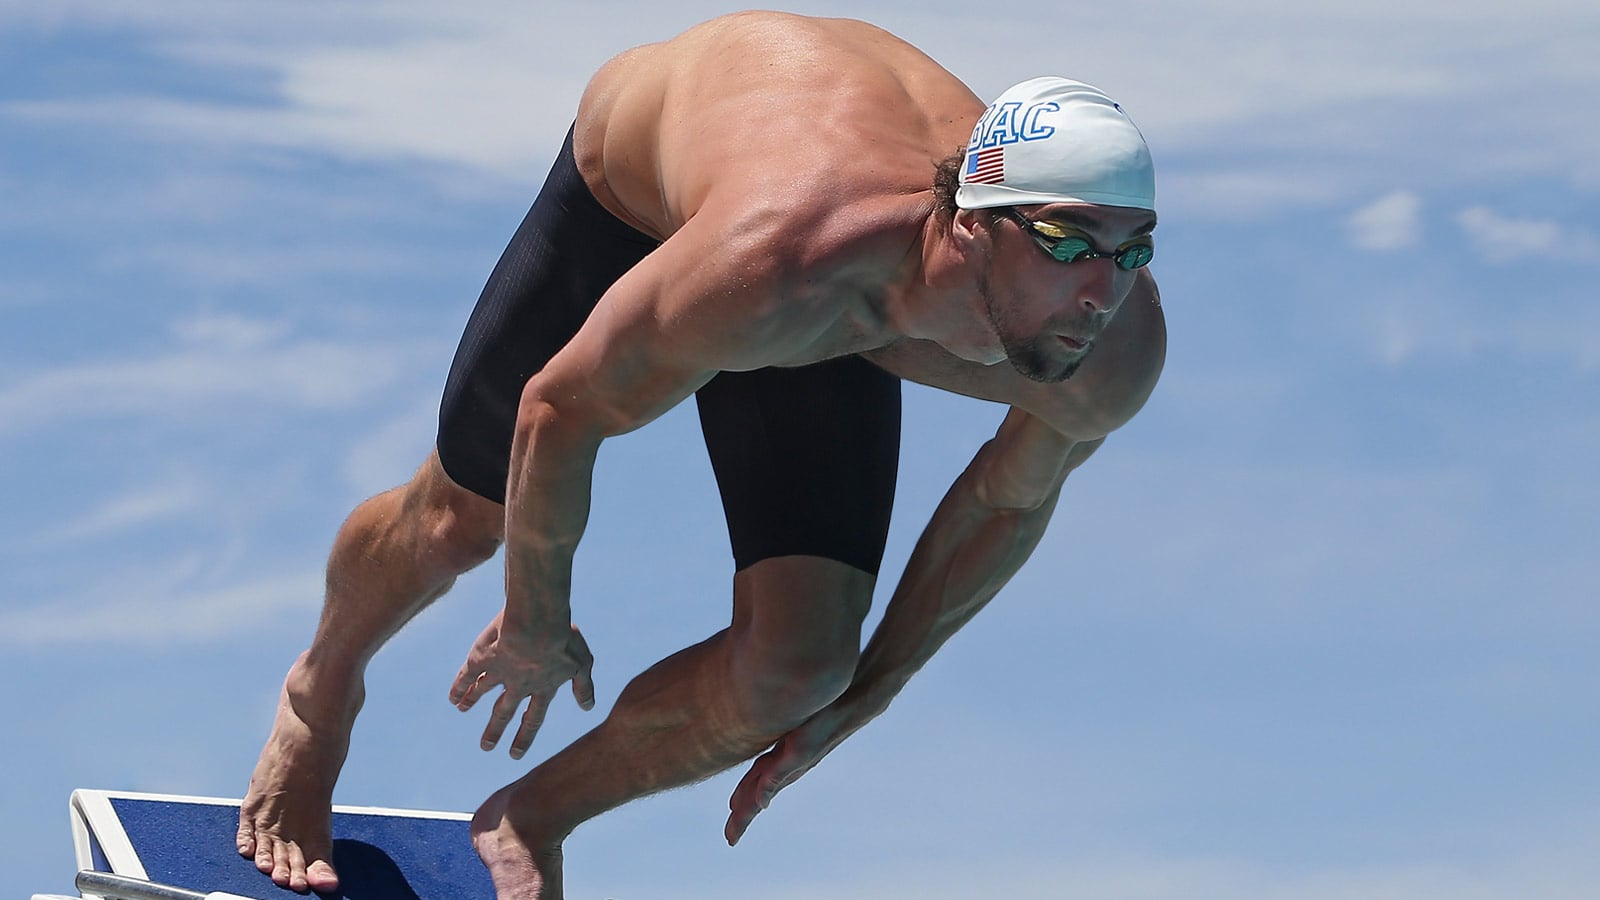 Michael Phelps ready to plunge